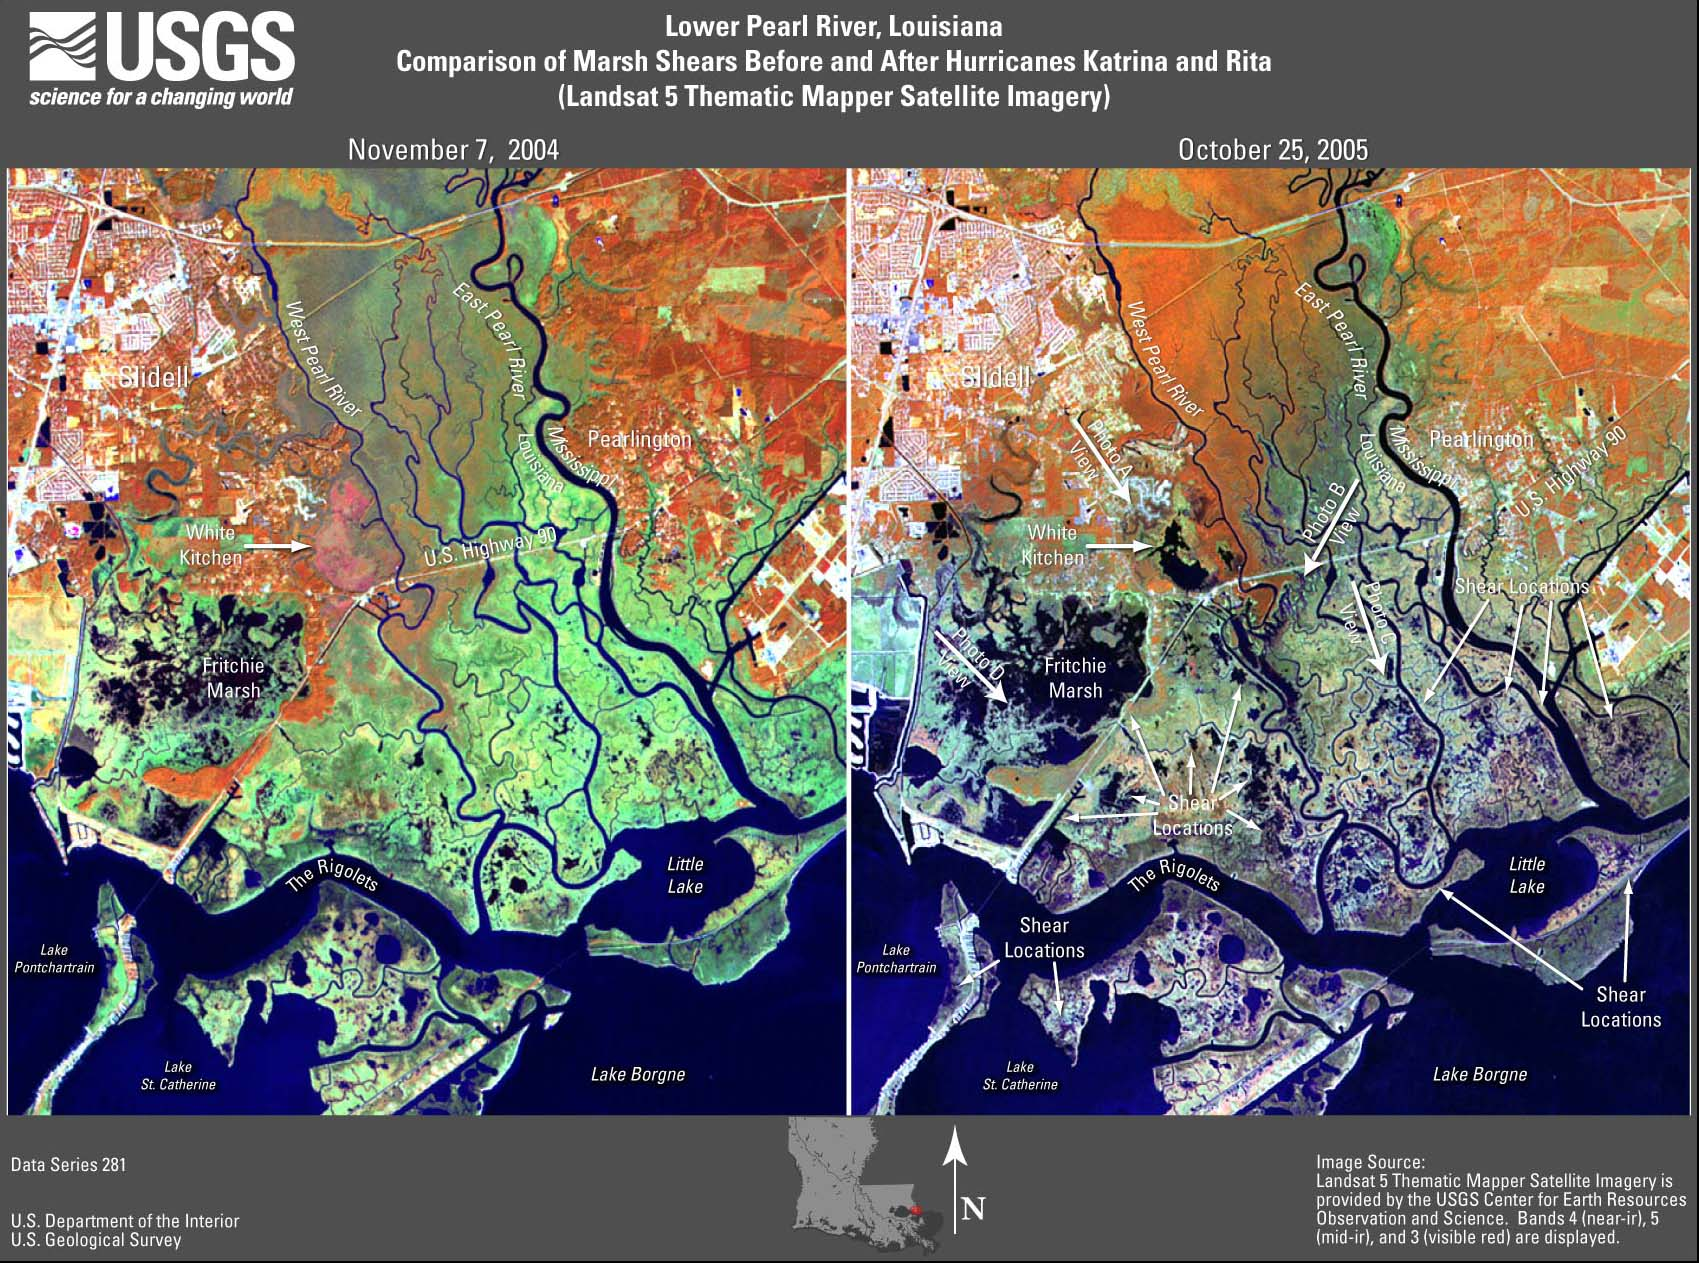 USGS Data Series 281 Satellite Images and Aerial Photographs of